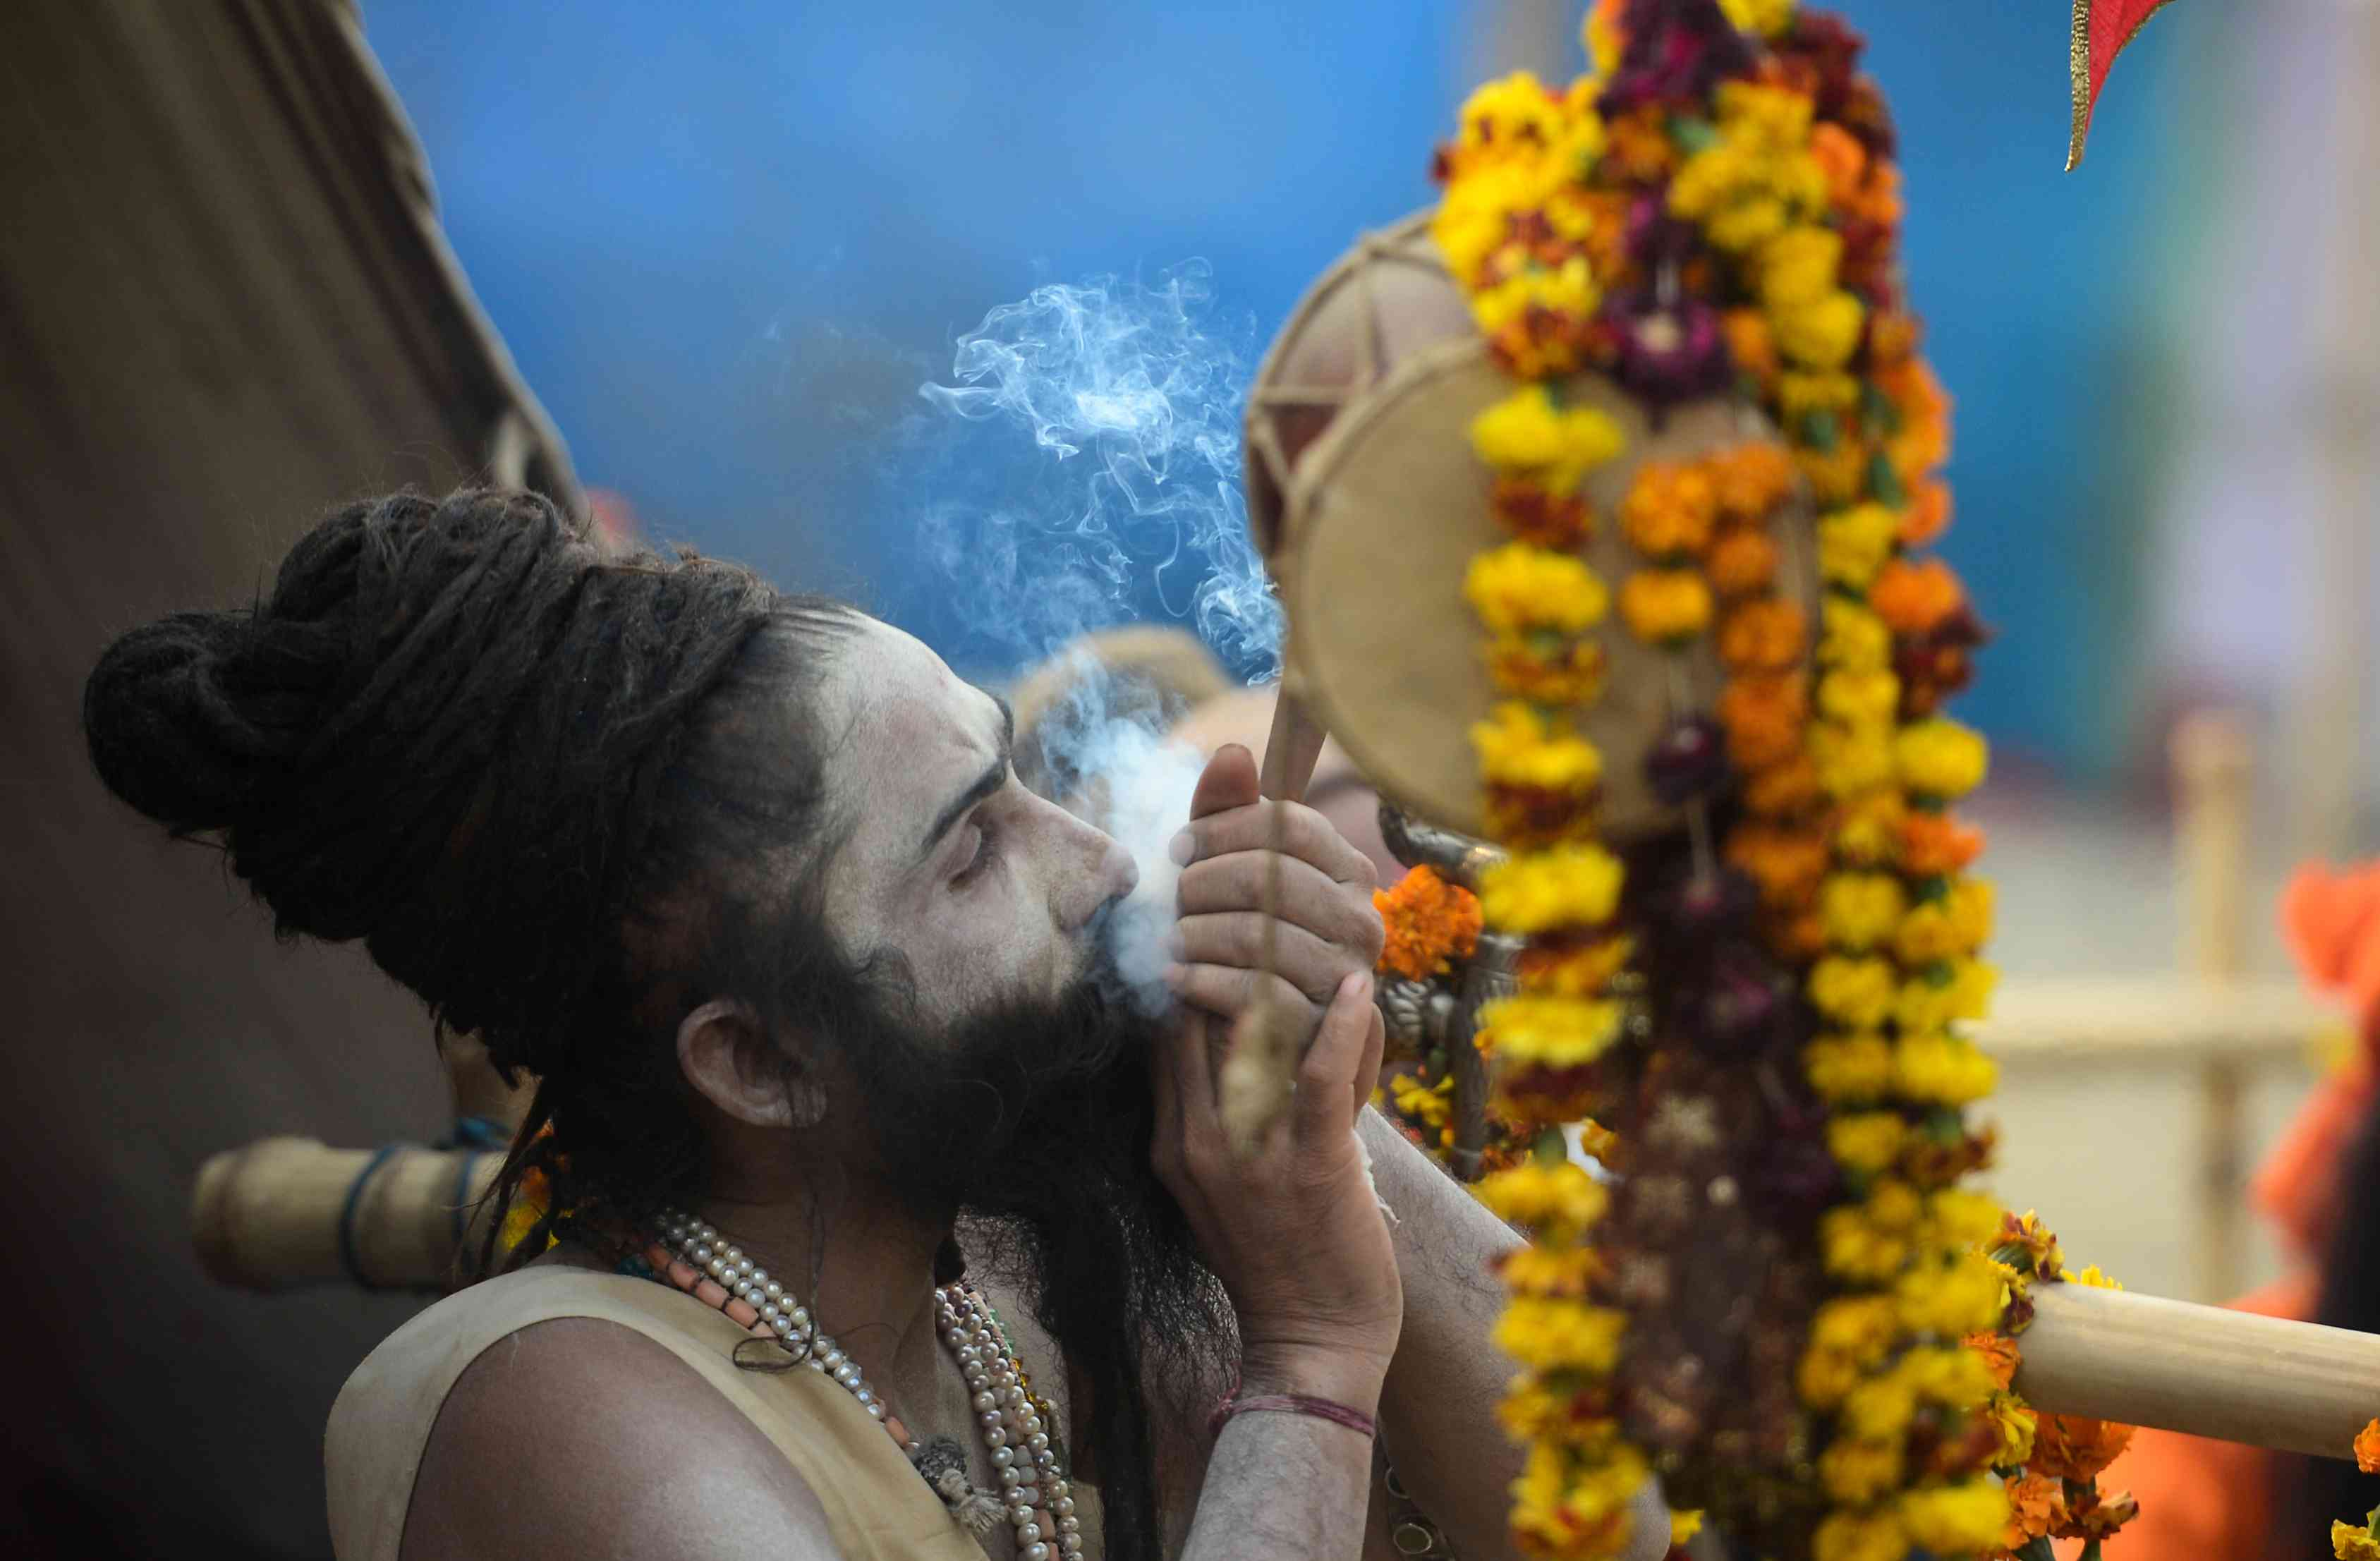 A Hindu pilgrim at the site of the Kumbh mela on Sunday. Credit: Sanjay Kanojia/AFP